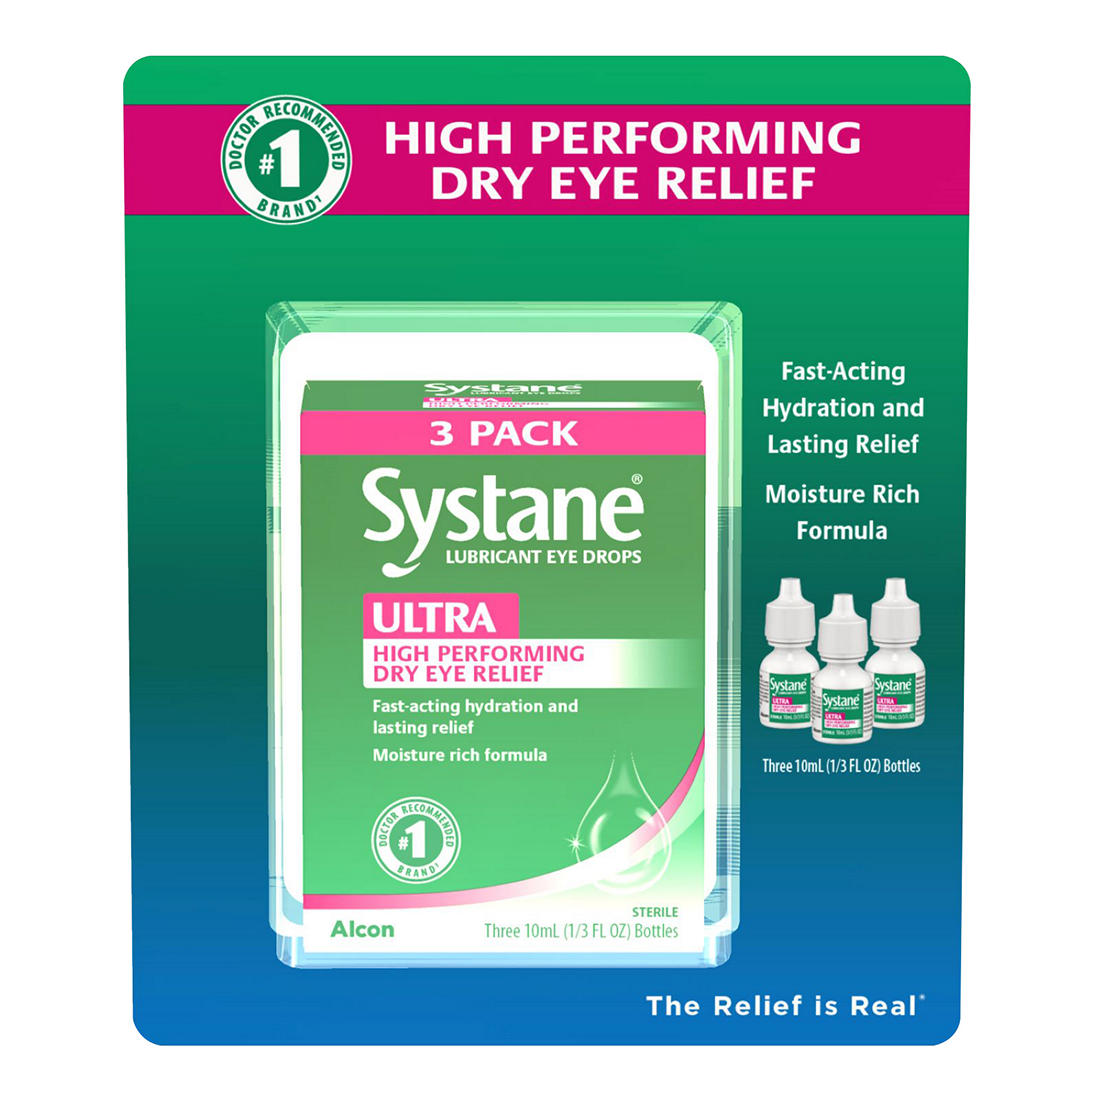 photograph about Systane Coupons Printable titled Systane Extremely Lubrication Eye Drops, 3 pk./10mL